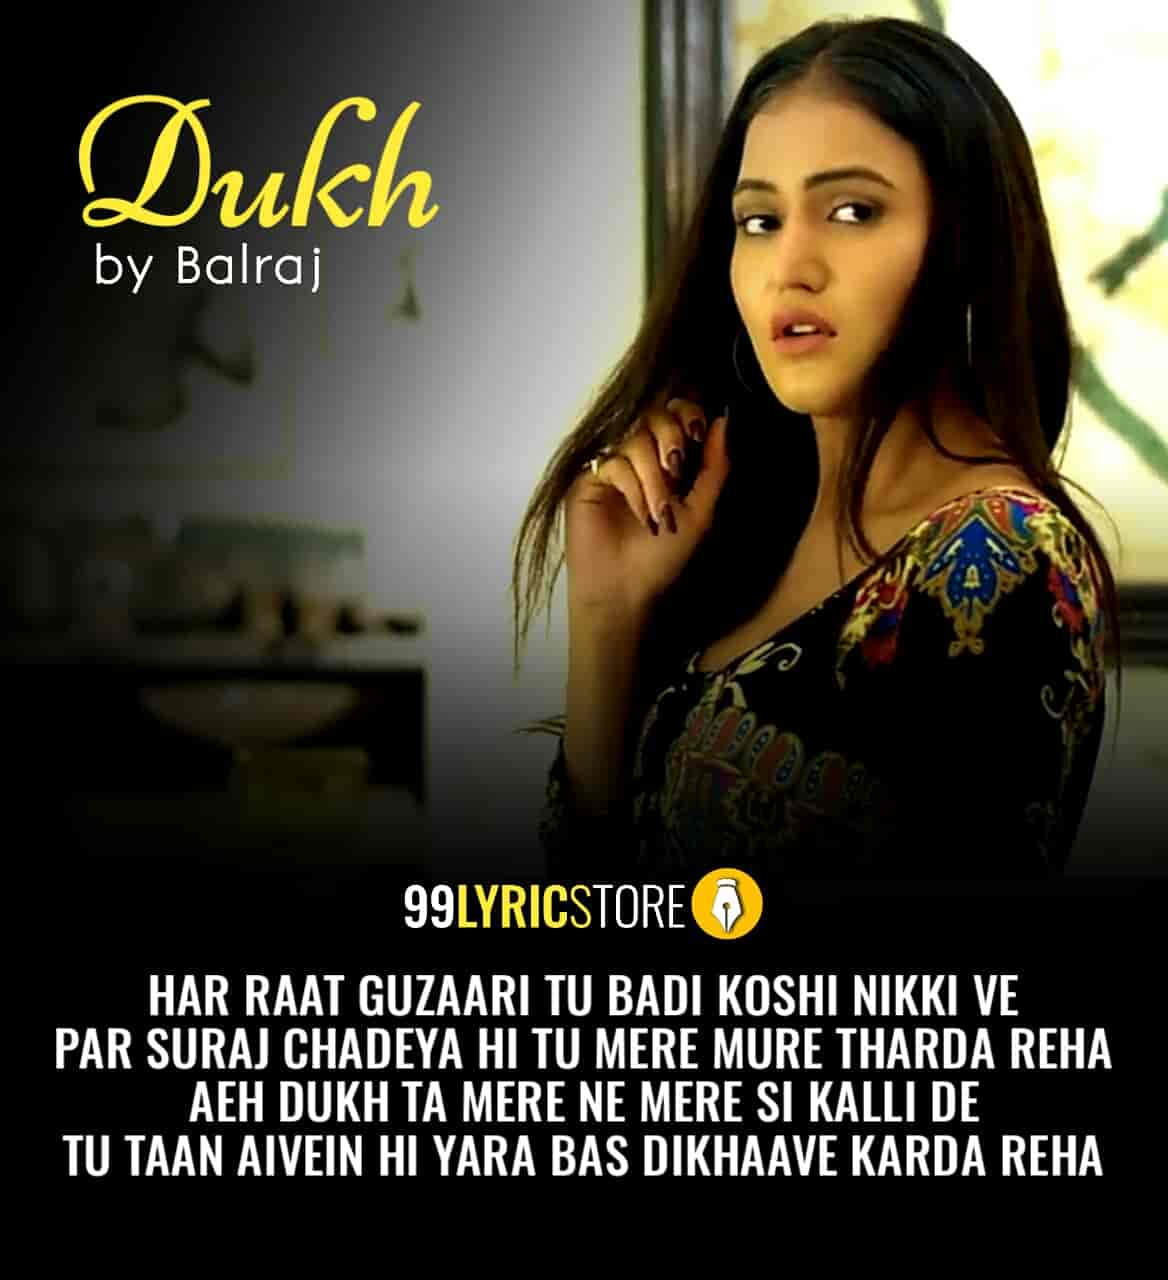 Dukh sad Punjabi Song Sung by Balraj